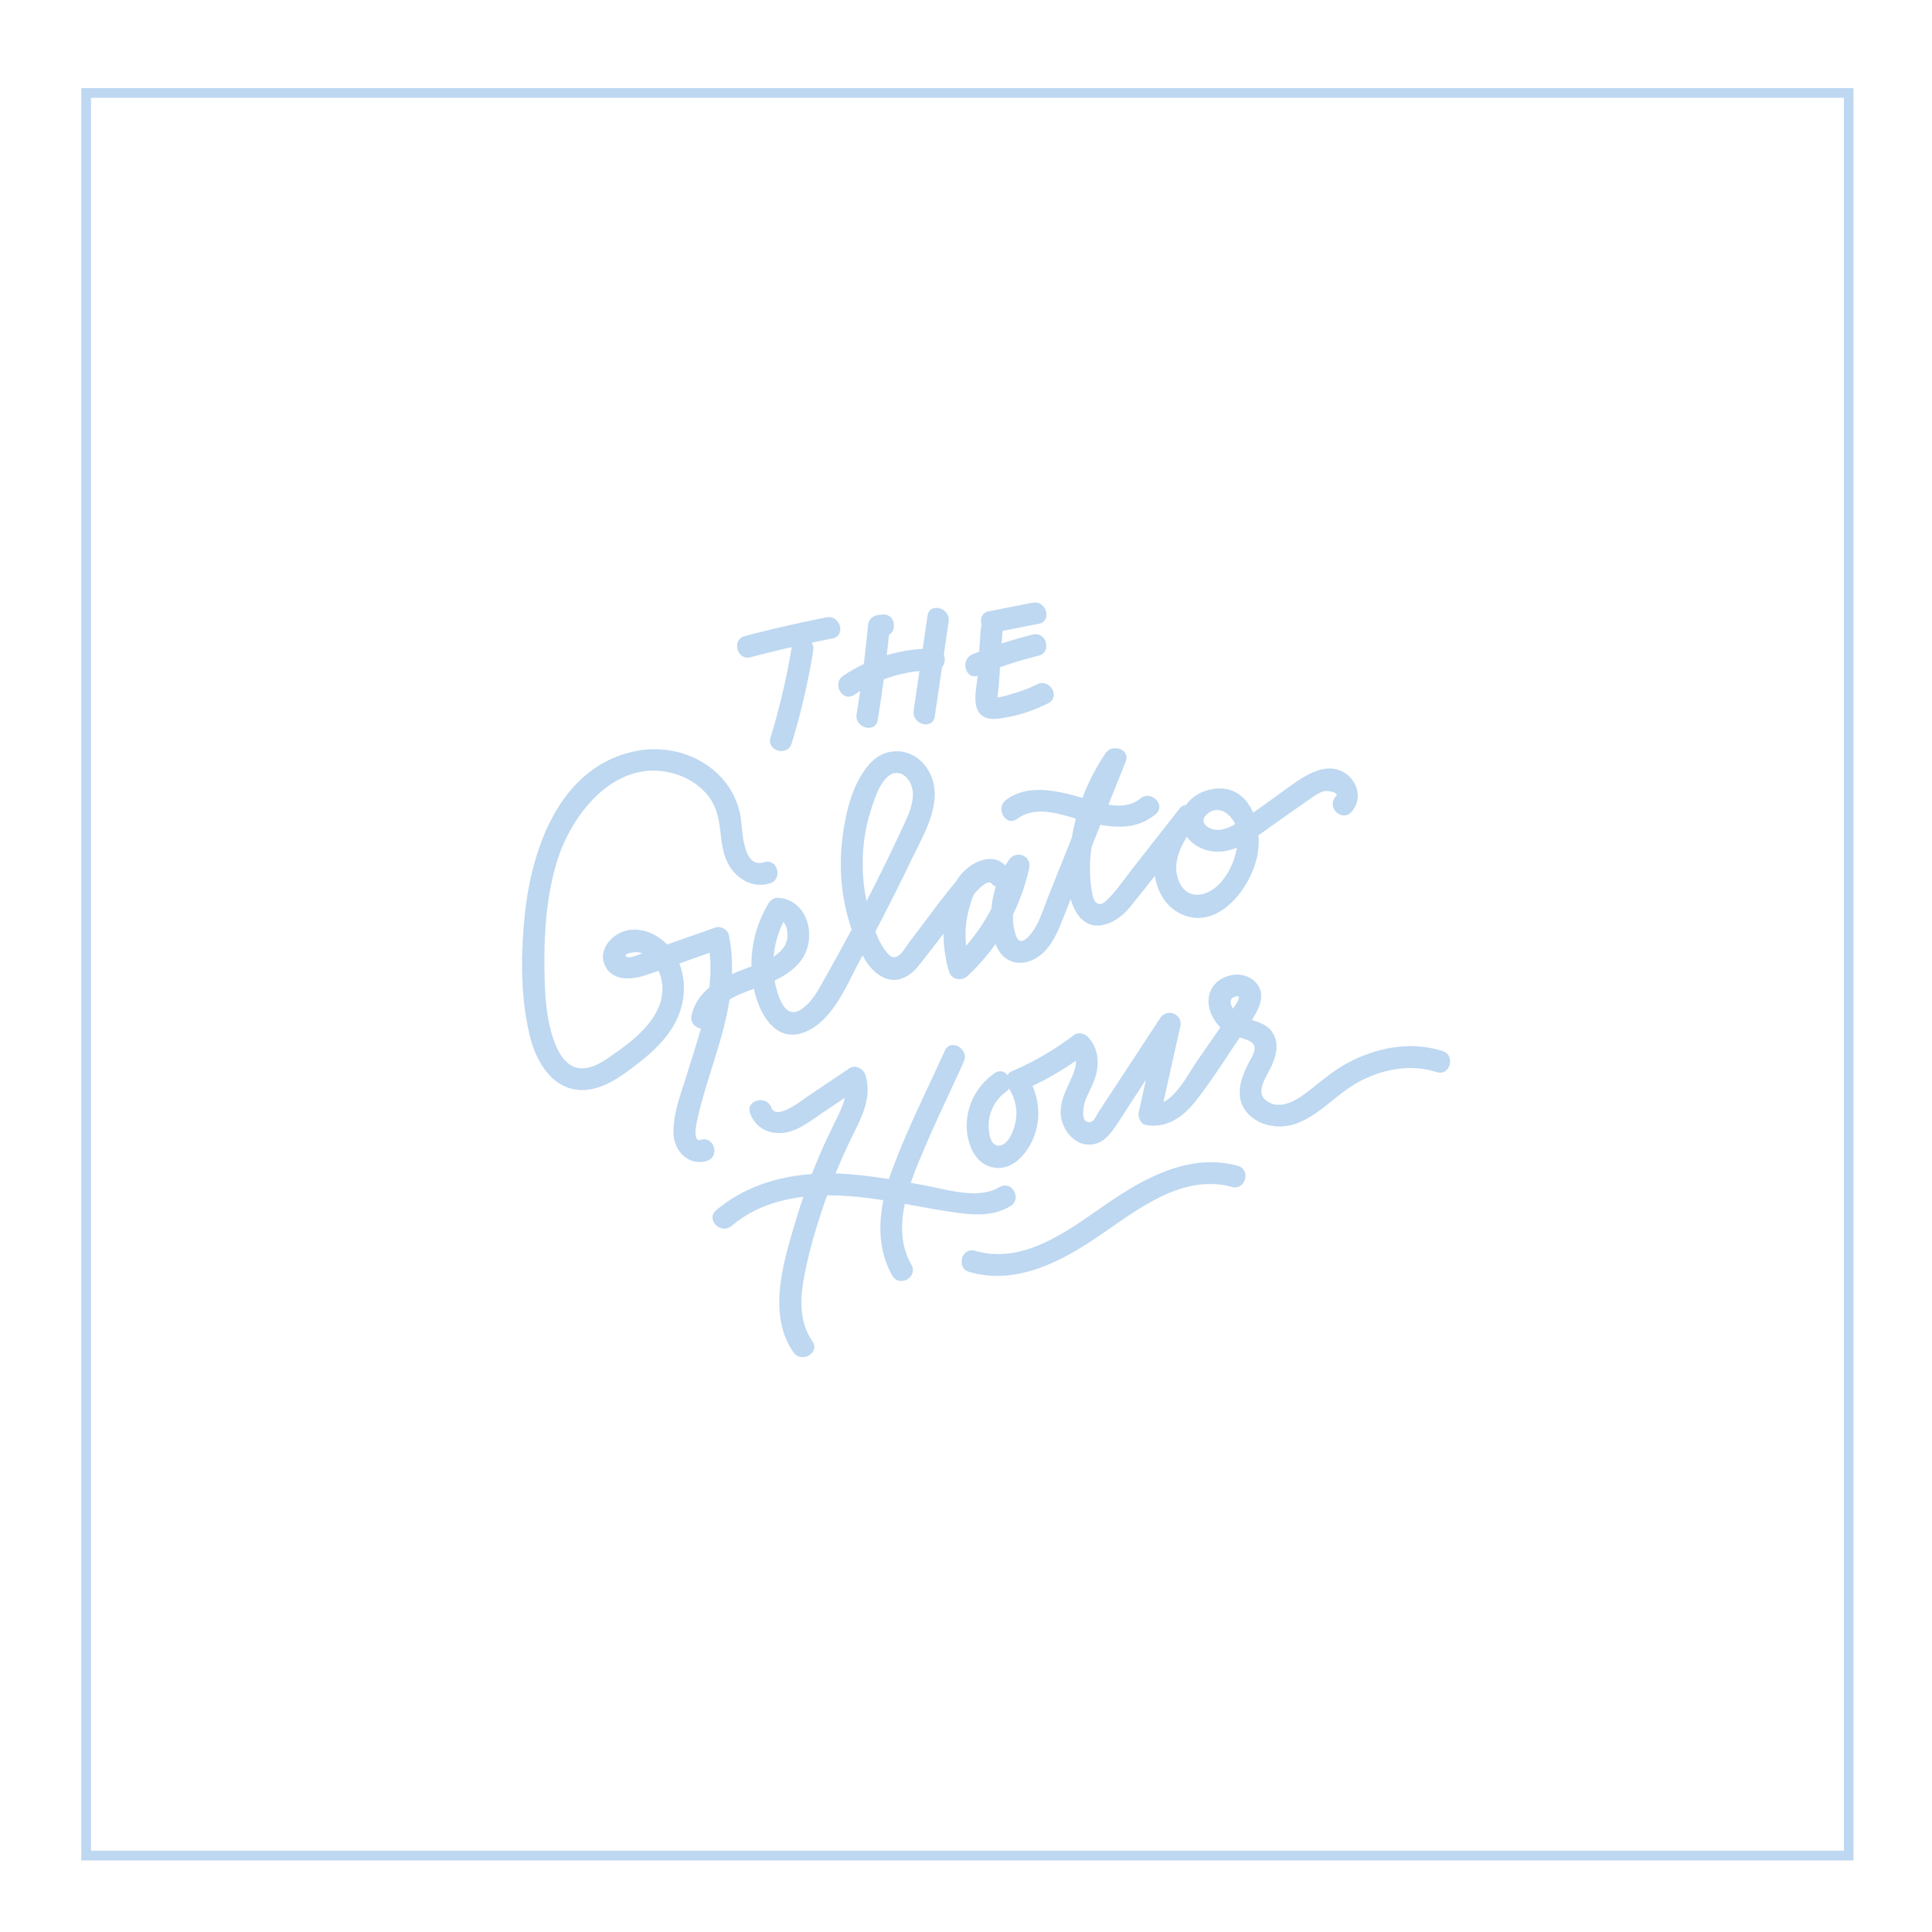 Life-and-Thyme_Melanie-Loon_Illustrator_Hand-Lettering_Cursive_Typography_Font_Gelato_Flavors_Italian-02-The-Gelato-Hour.png